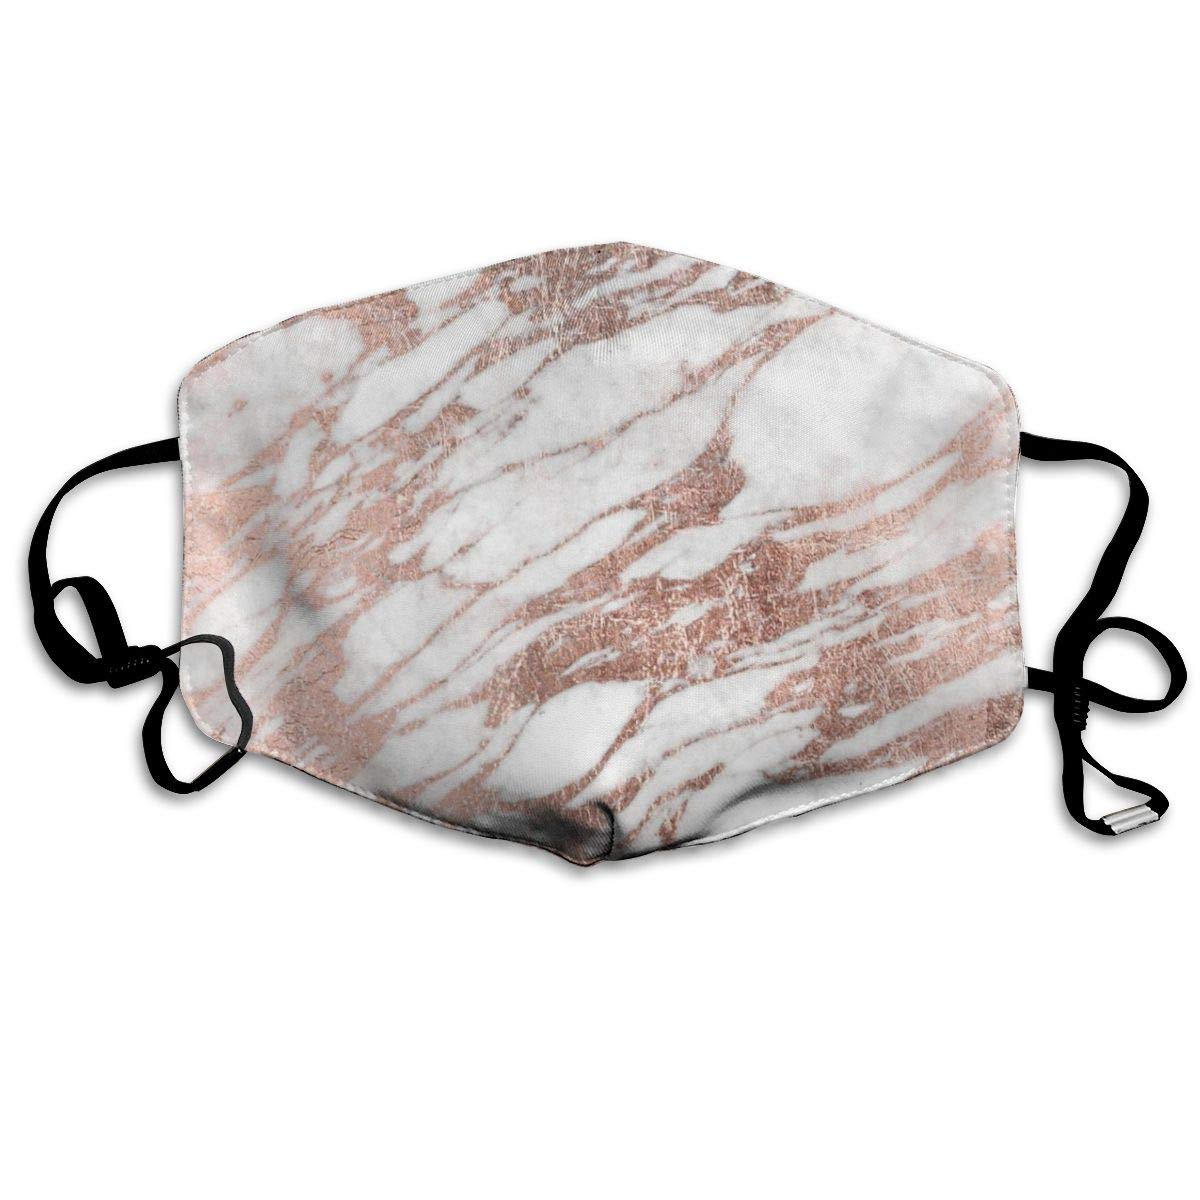 Mouth Mask   & Healthy Fashion Face Cover Masks, Stone Chic Elegant White Pink Rose Gold Marble Modern Polyester Comfortable